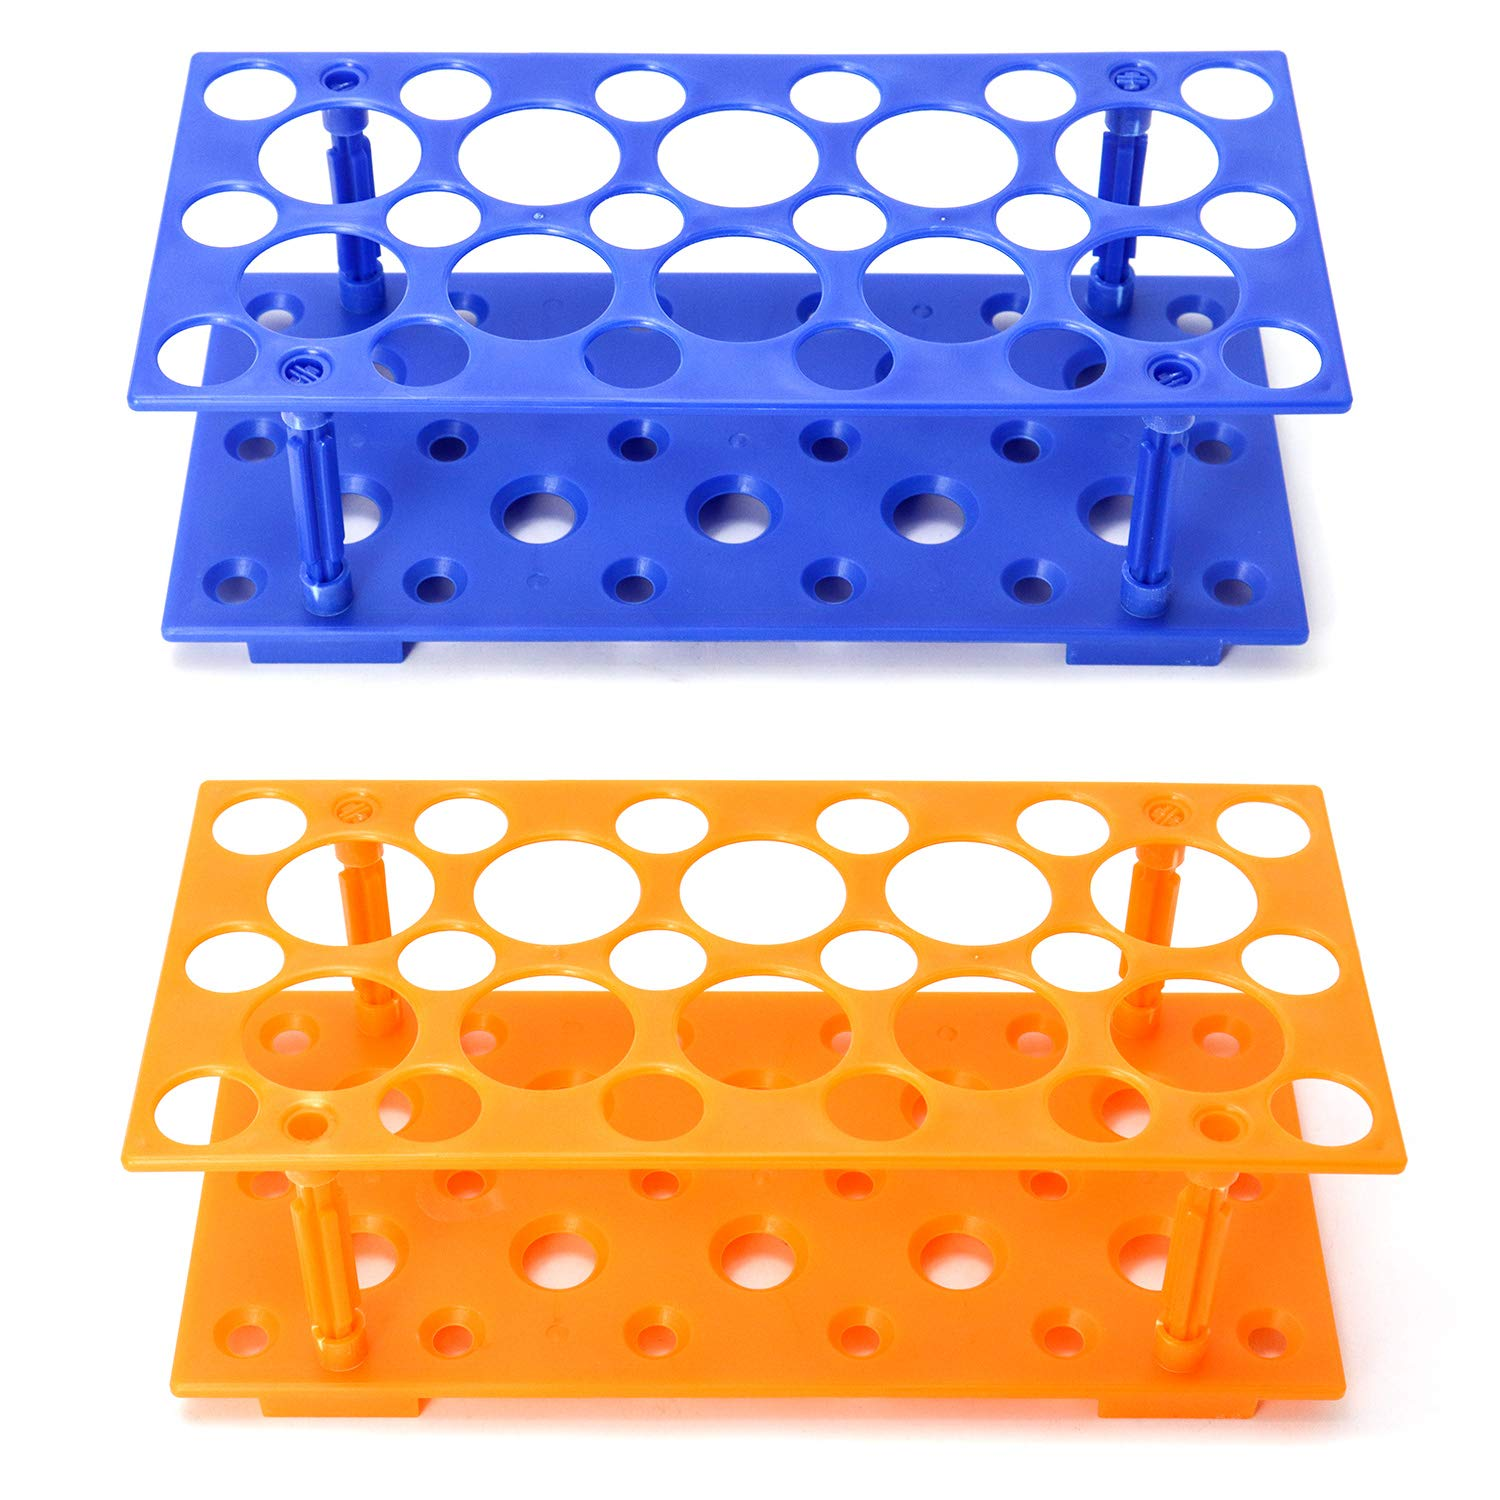 QWORK 2 Pack Plastic Louisville-Jefferson County Mall Test 2021 autumn and winter new Rack Centrifuge Labora Tube